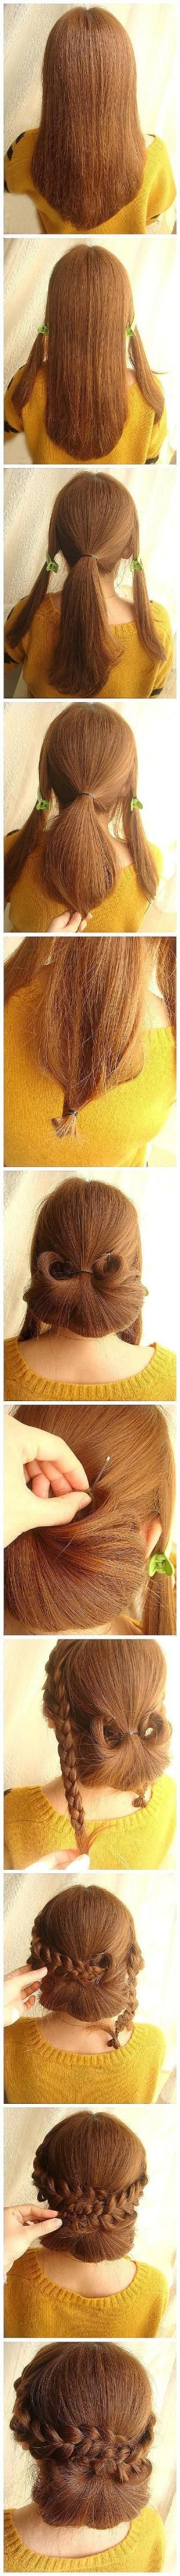 1860's hair styling. by winnie